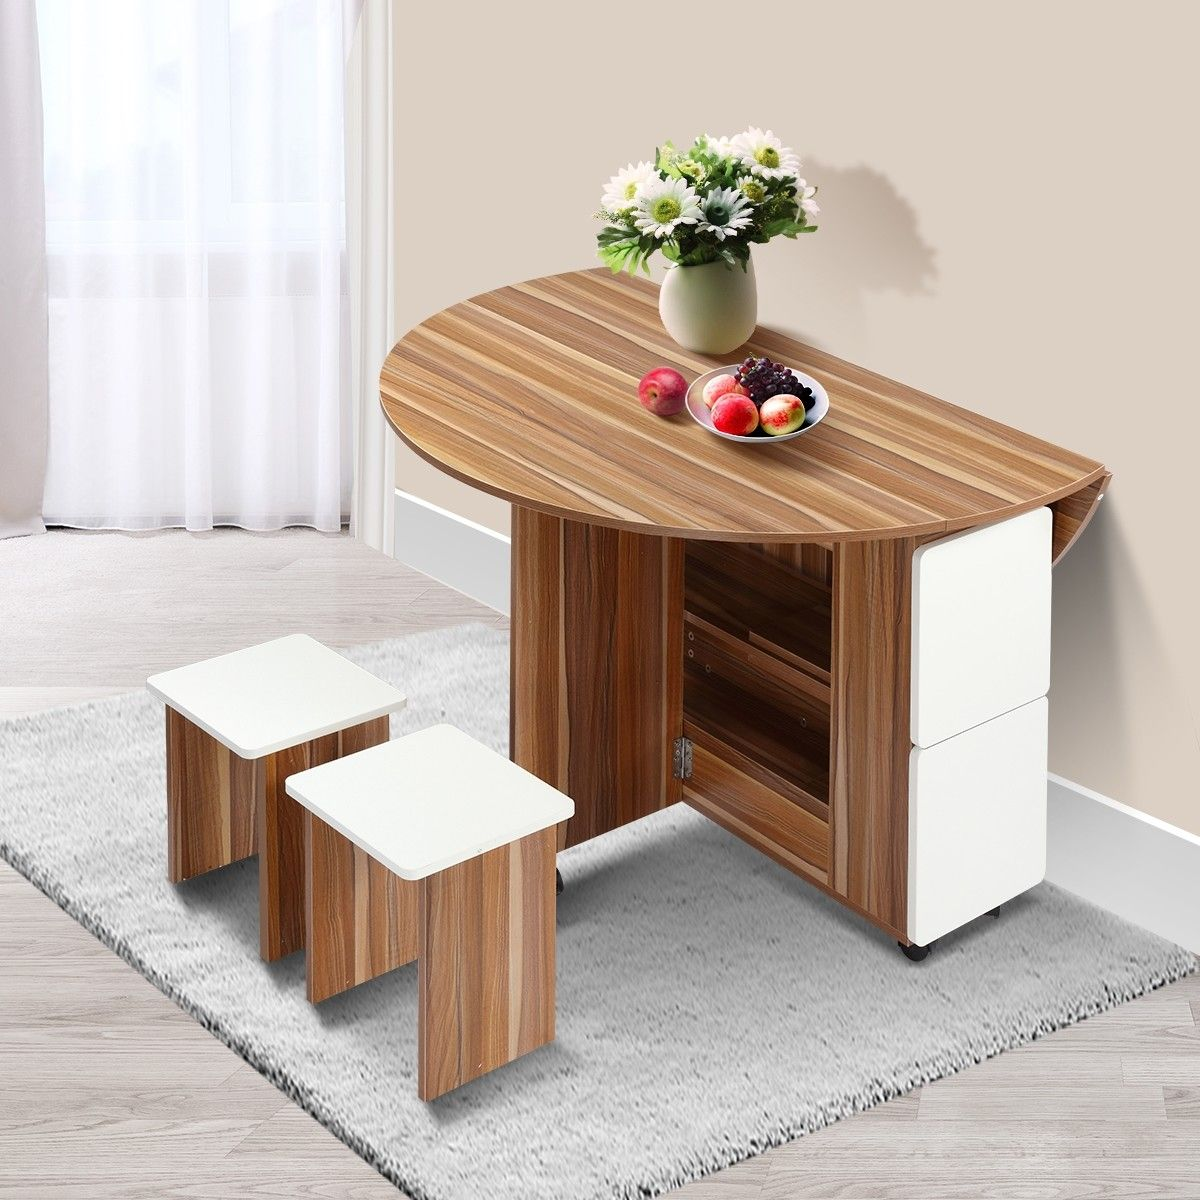 Wooden Folding Dining Table And 4 Chairs Set Round Table With Wheels Wooden Dining Table Set Foldable Dining Table Round Dining Room Table Folding dining table with chairs